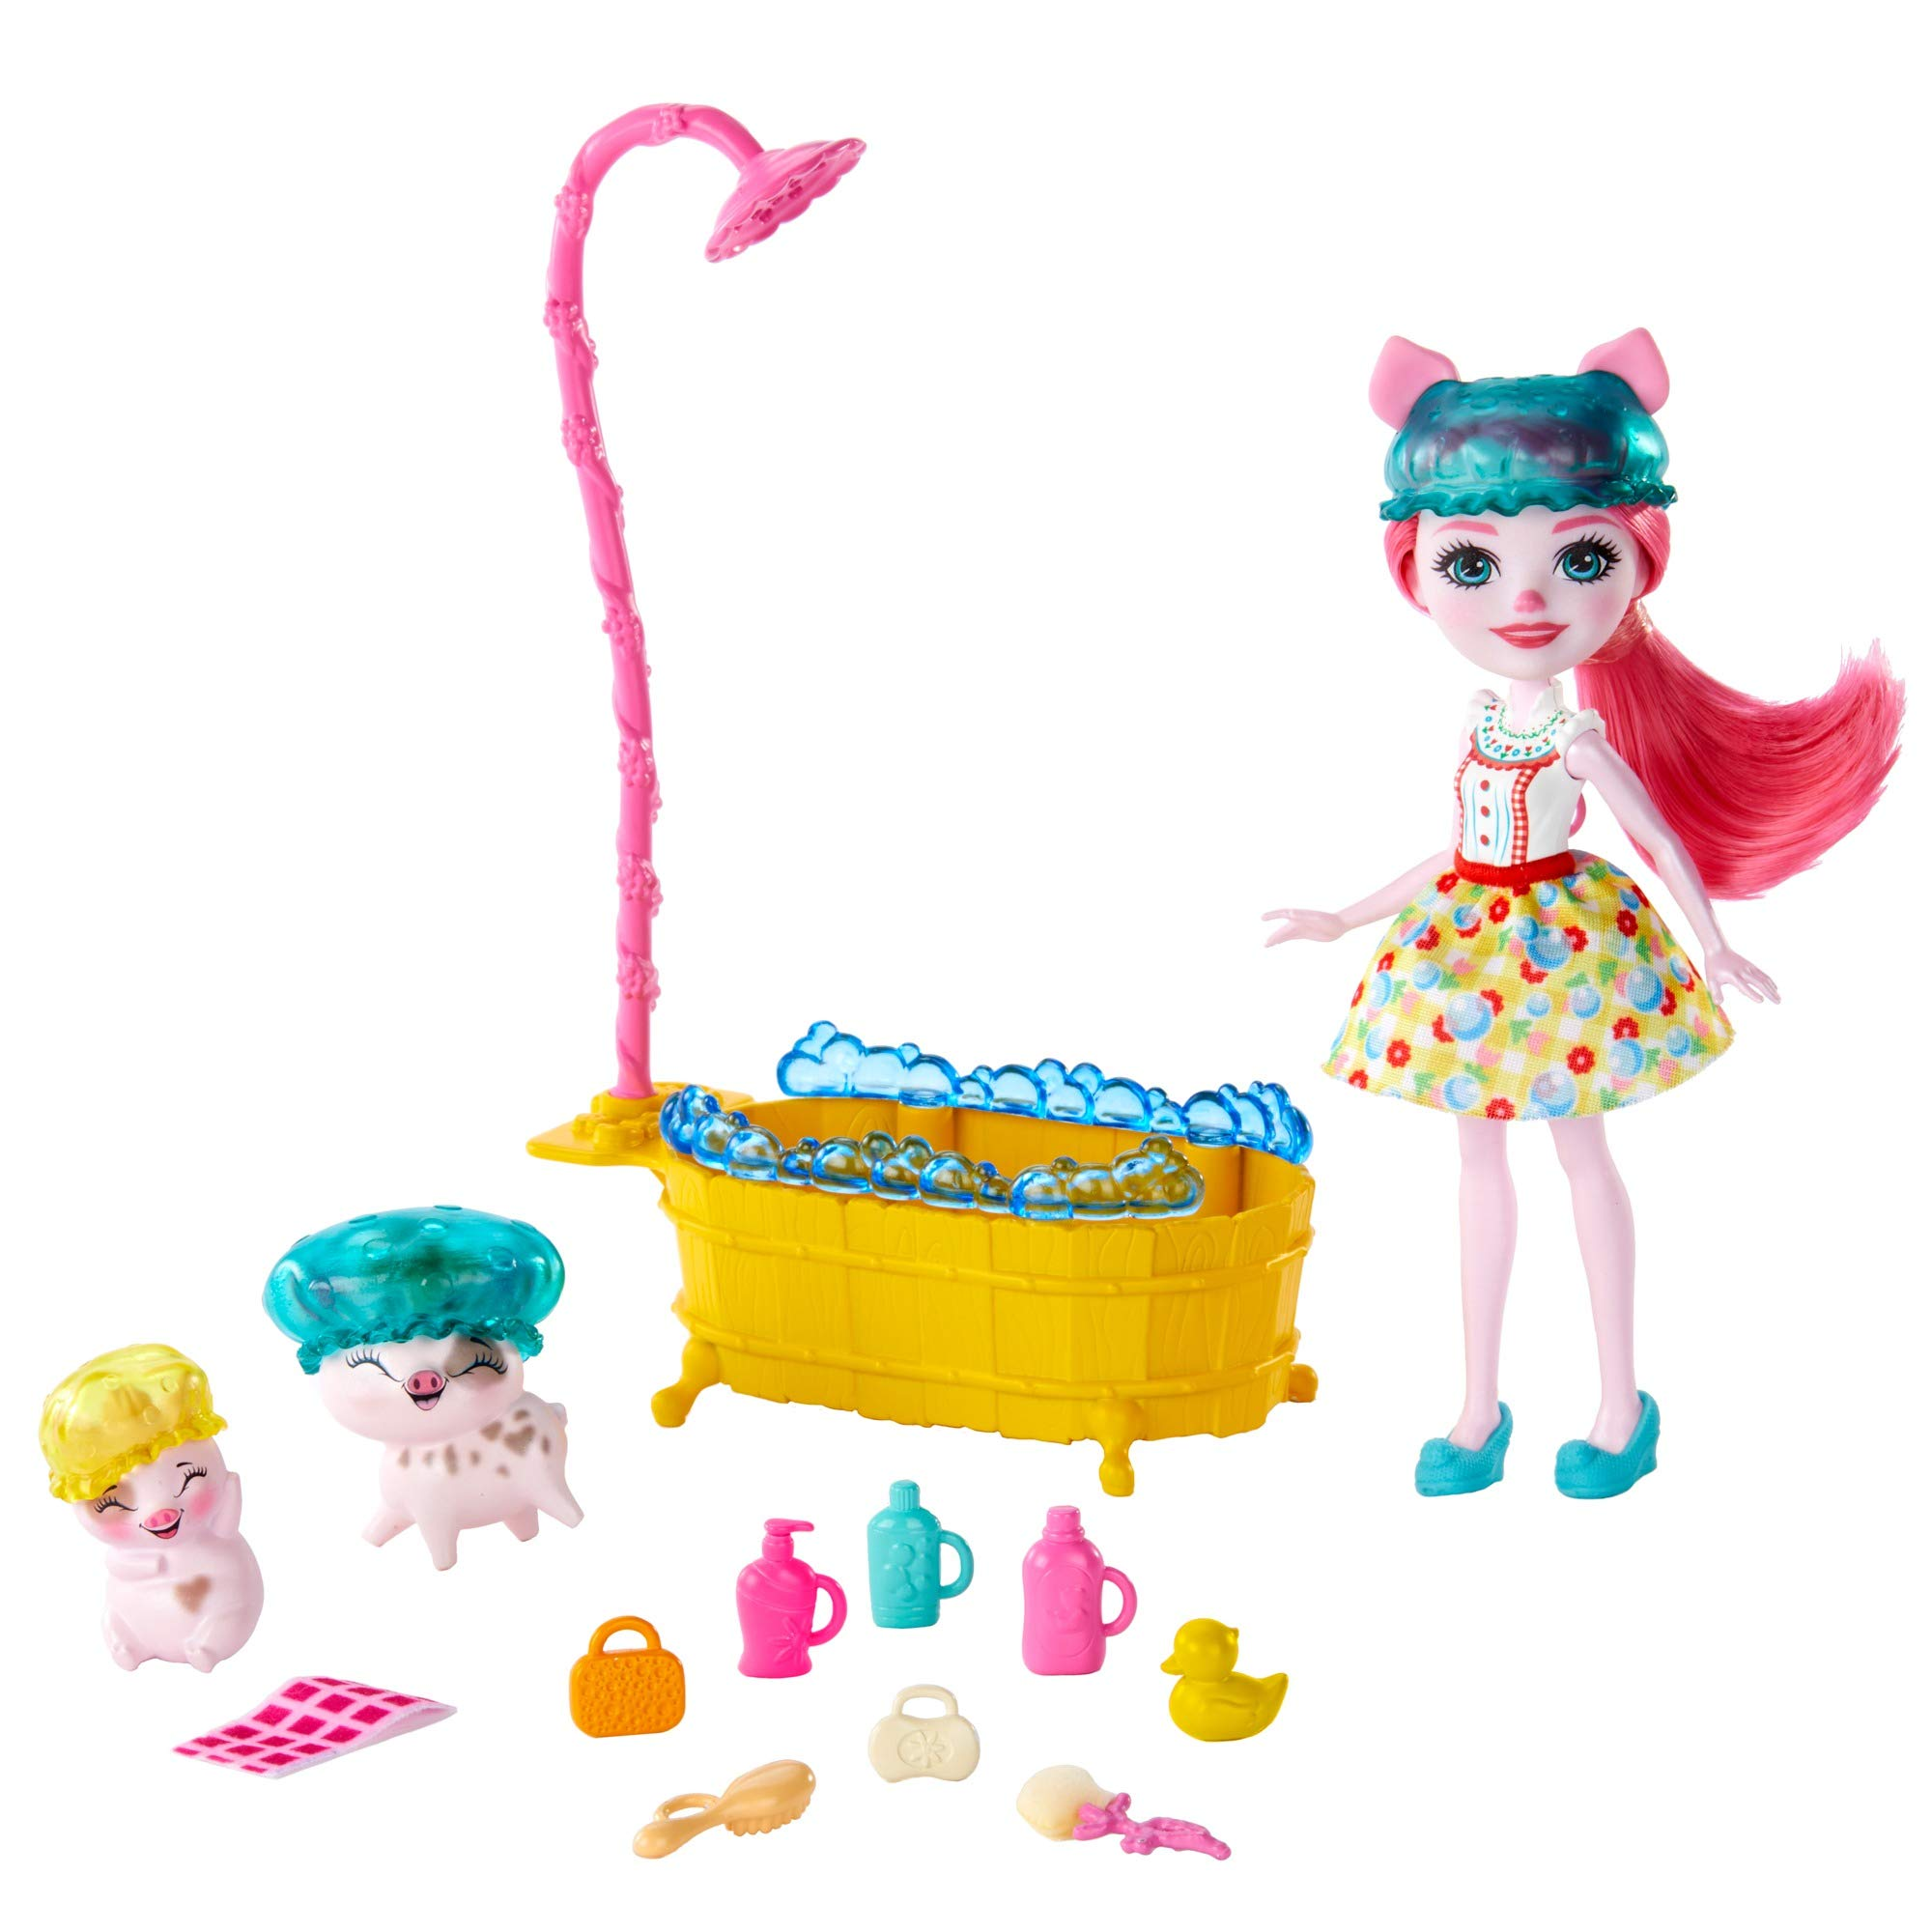 Enchantimals Bathtime Splash Water Playset with Petya Pig Doll (6-inch), 2 Pig Animal Friend Figures (1 with Color-Change Feature), and 11+ Accessories, Just Add Water, Multi